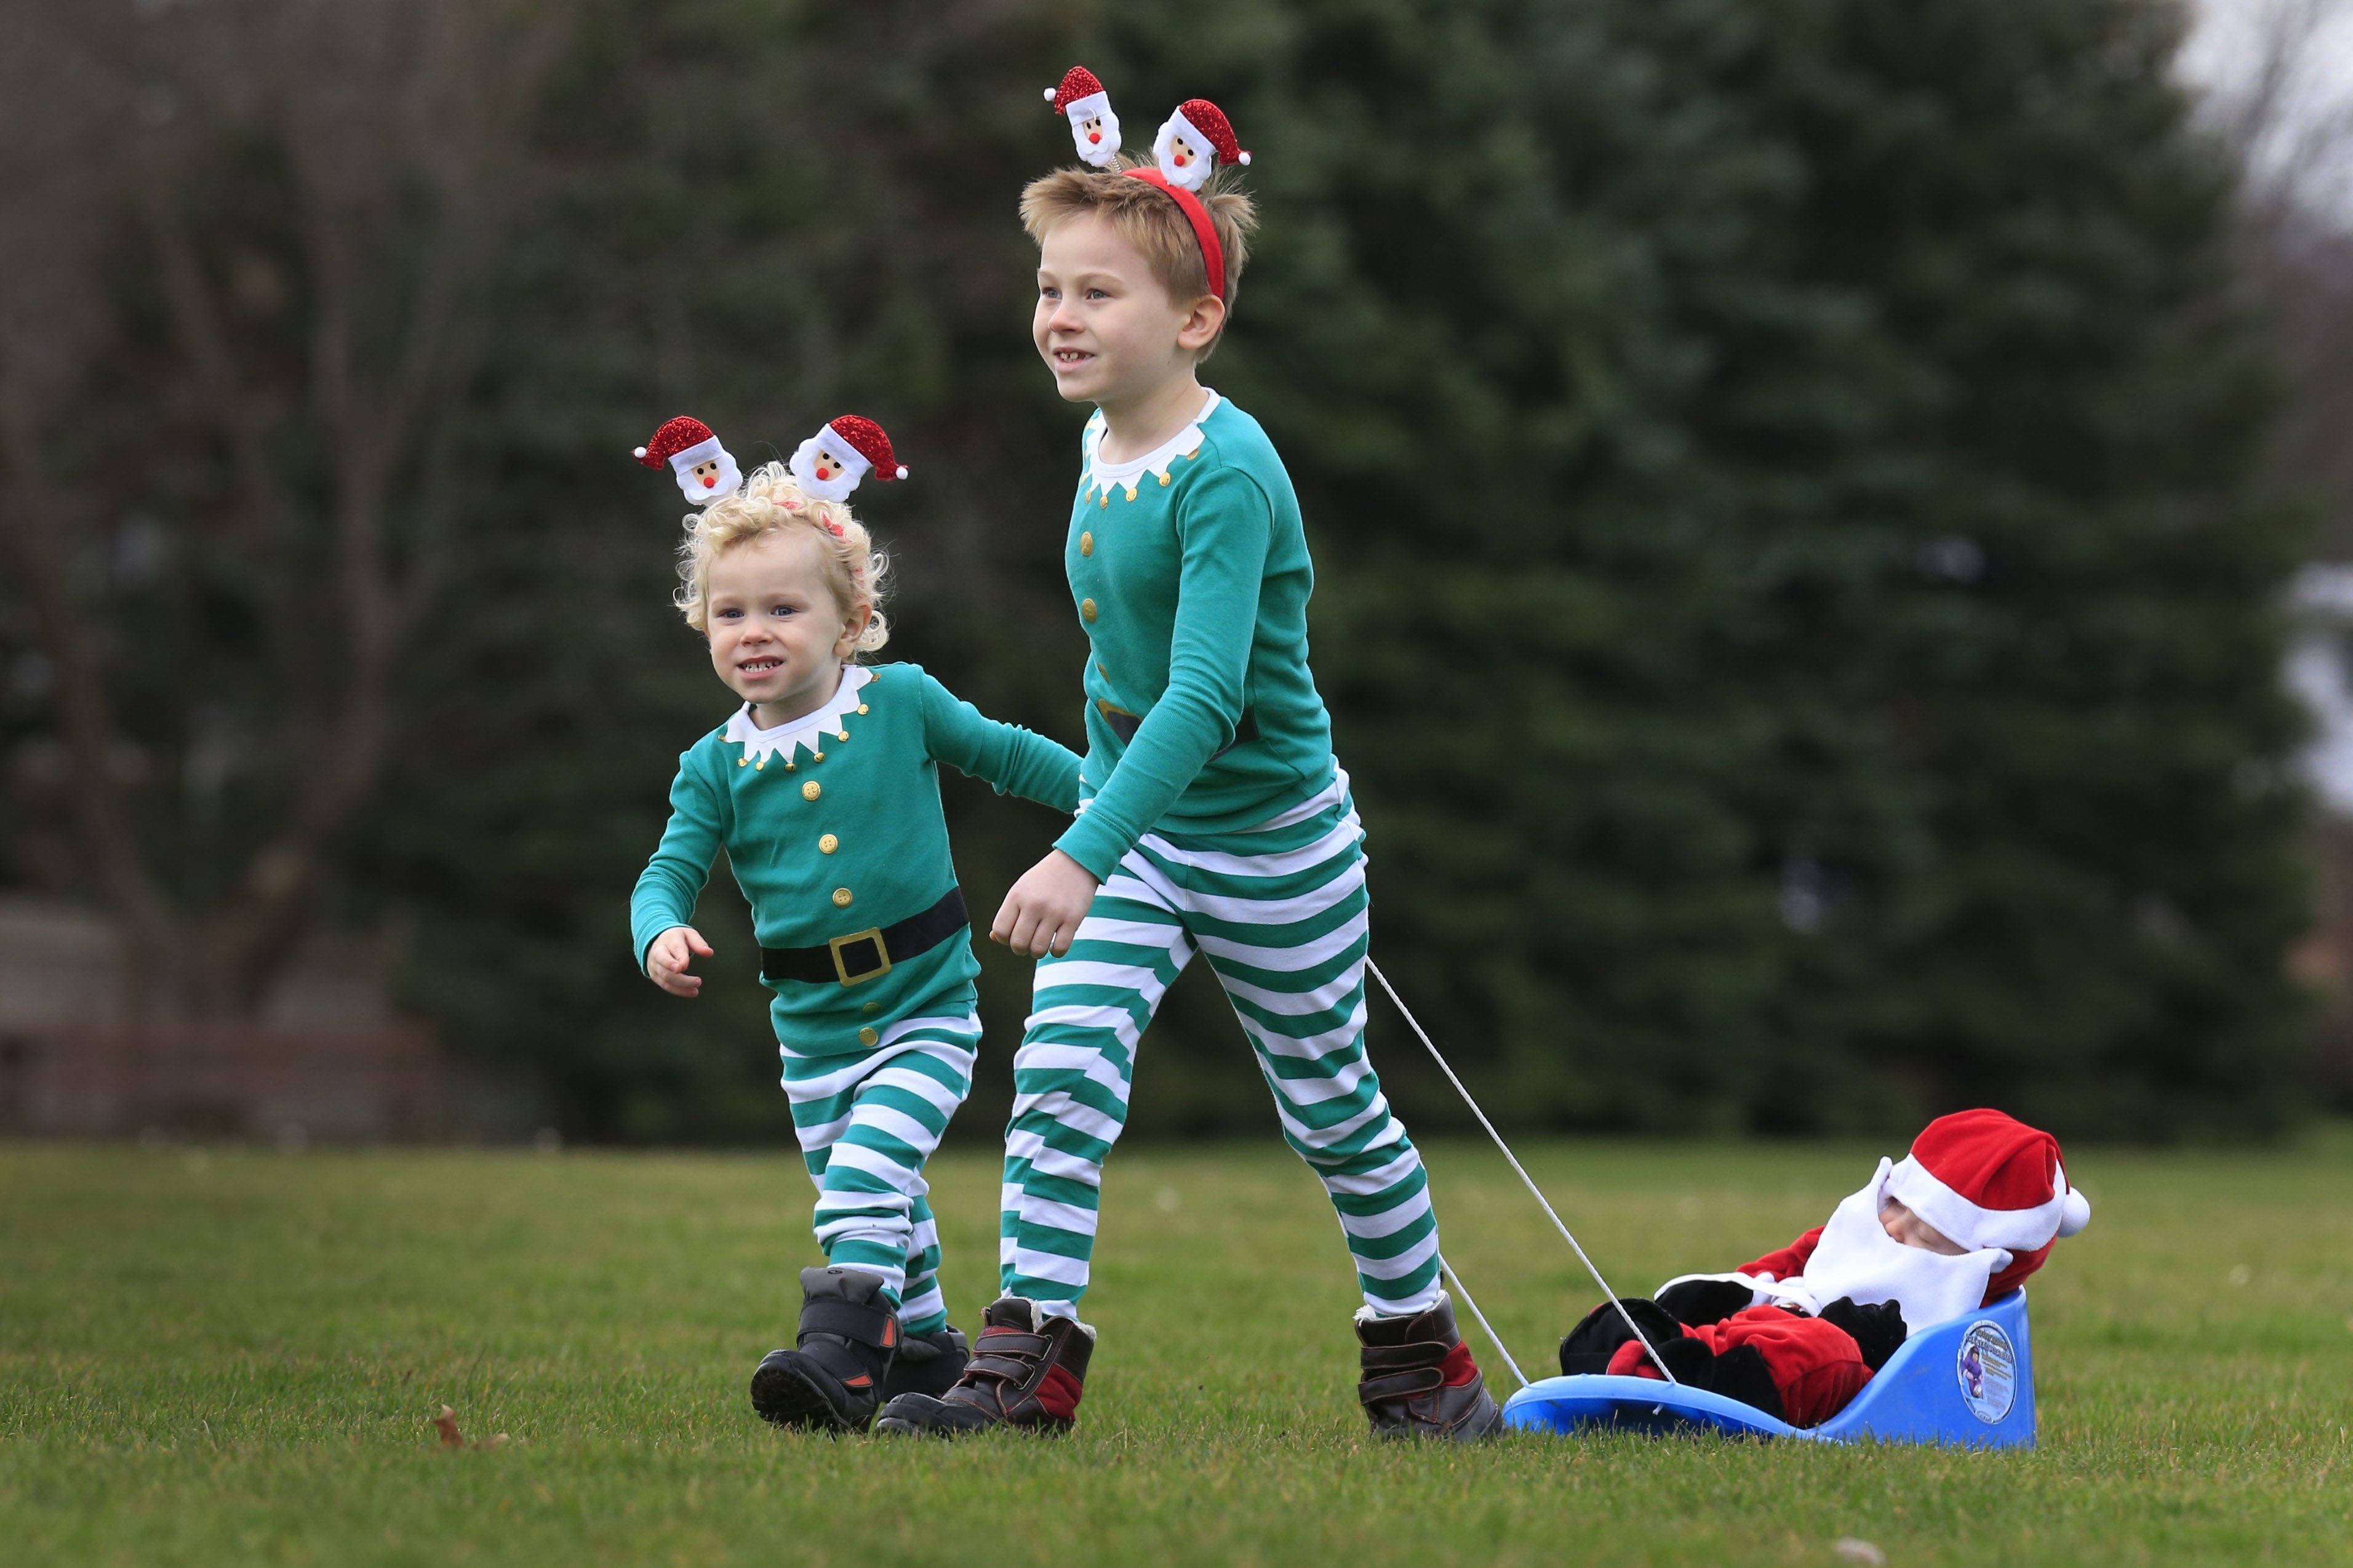 Roman Johnson, 8, and his brother, Landon Litzinger, 3, dressed as elves, pull their brother Hayden Litzinger, 9 months, dressed as a baby Santa in their backyard Friday.